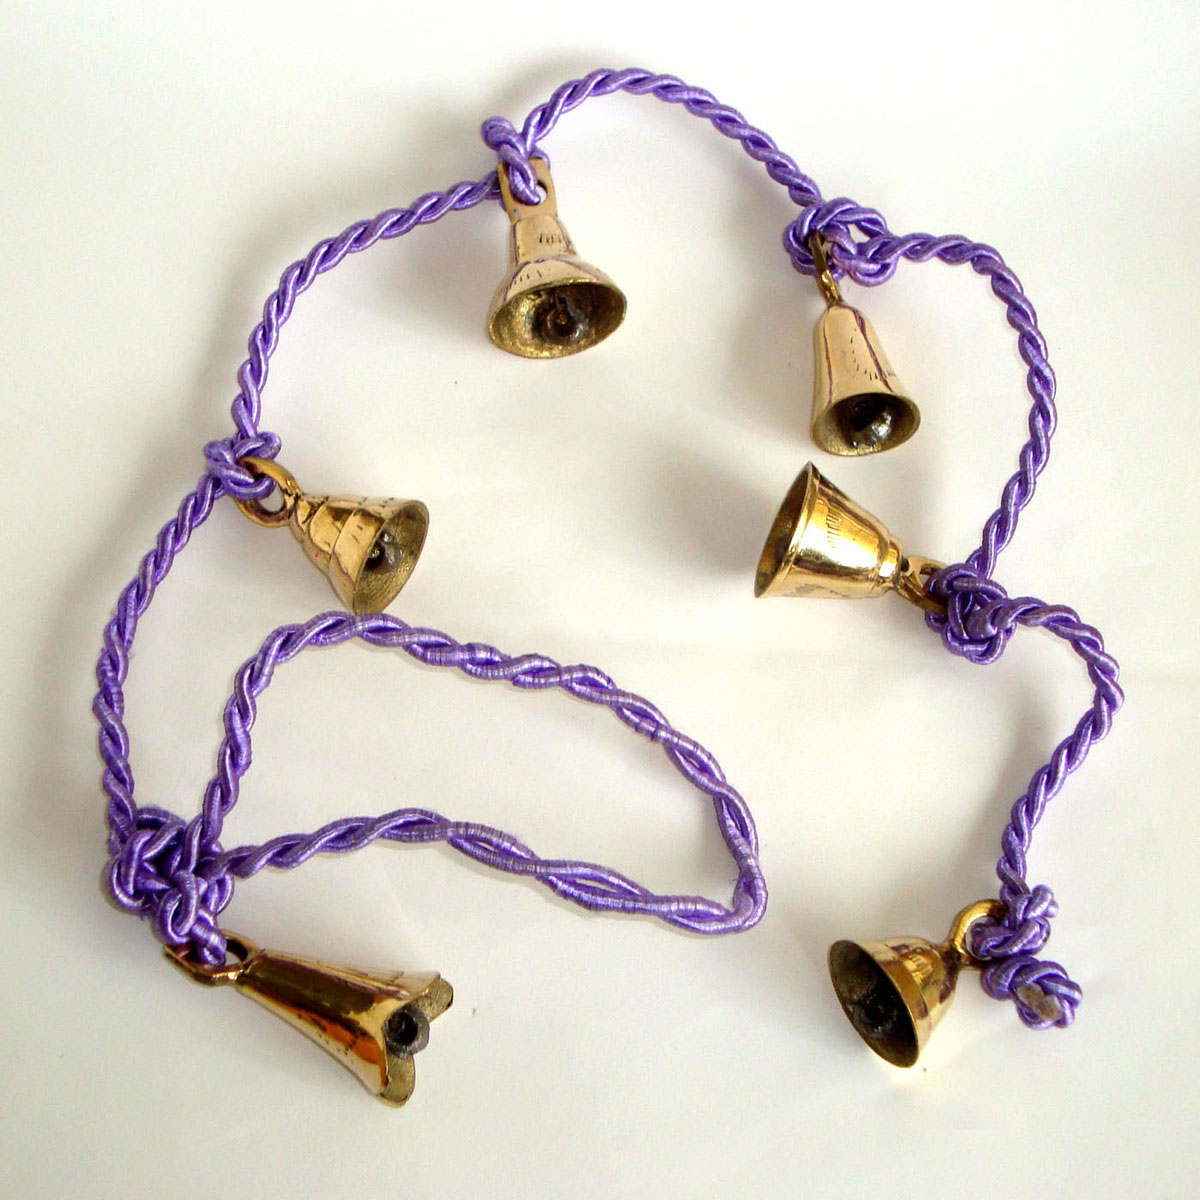 Brass Bells on String - LARGE